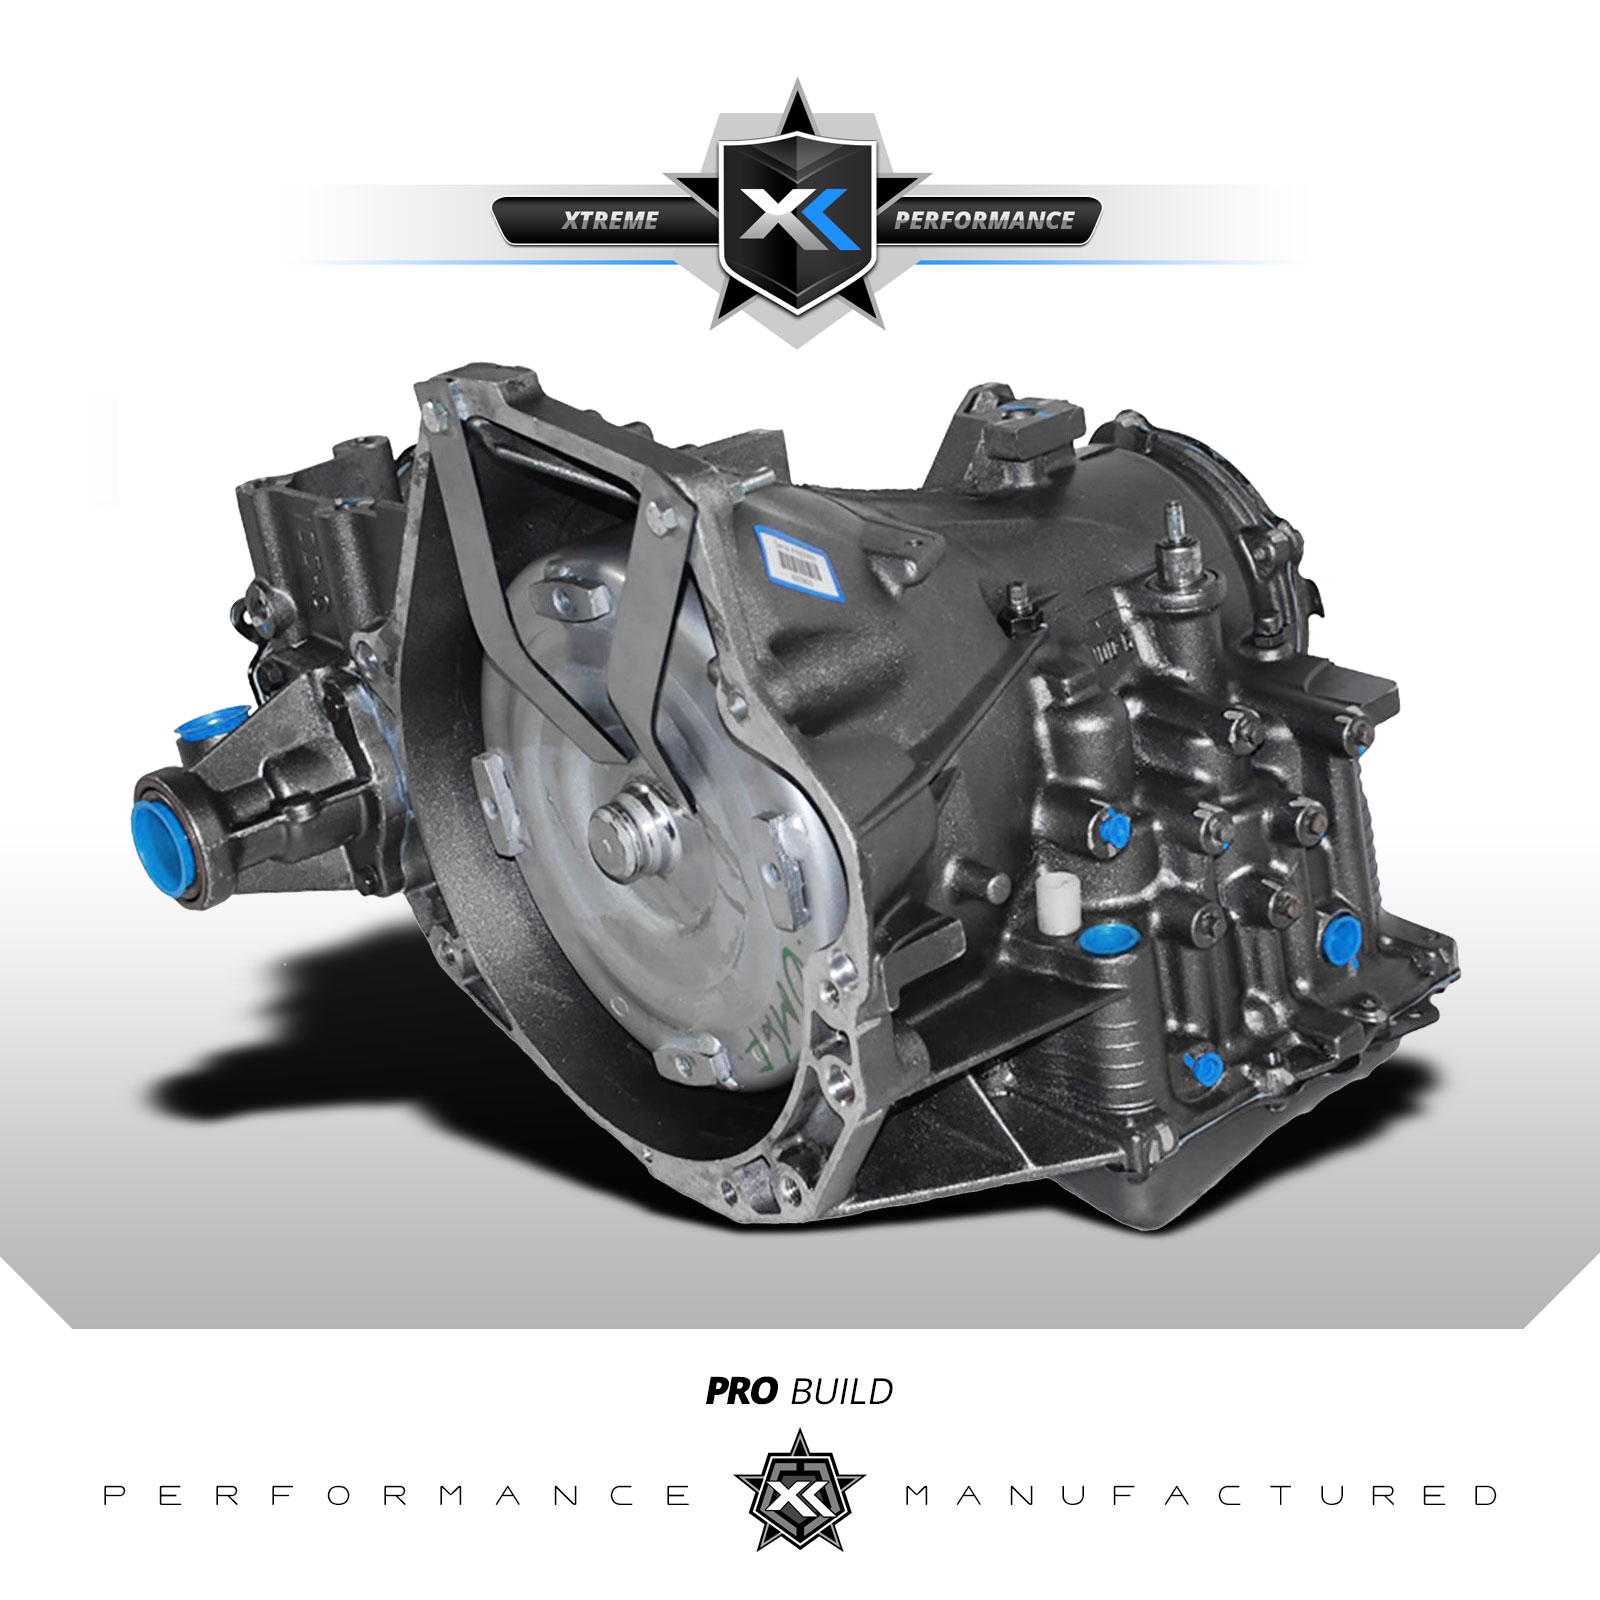 1993 Plymouth Acclaim Transmission: A413 31TH A404 A670 Transmission For Sale, Rebuild